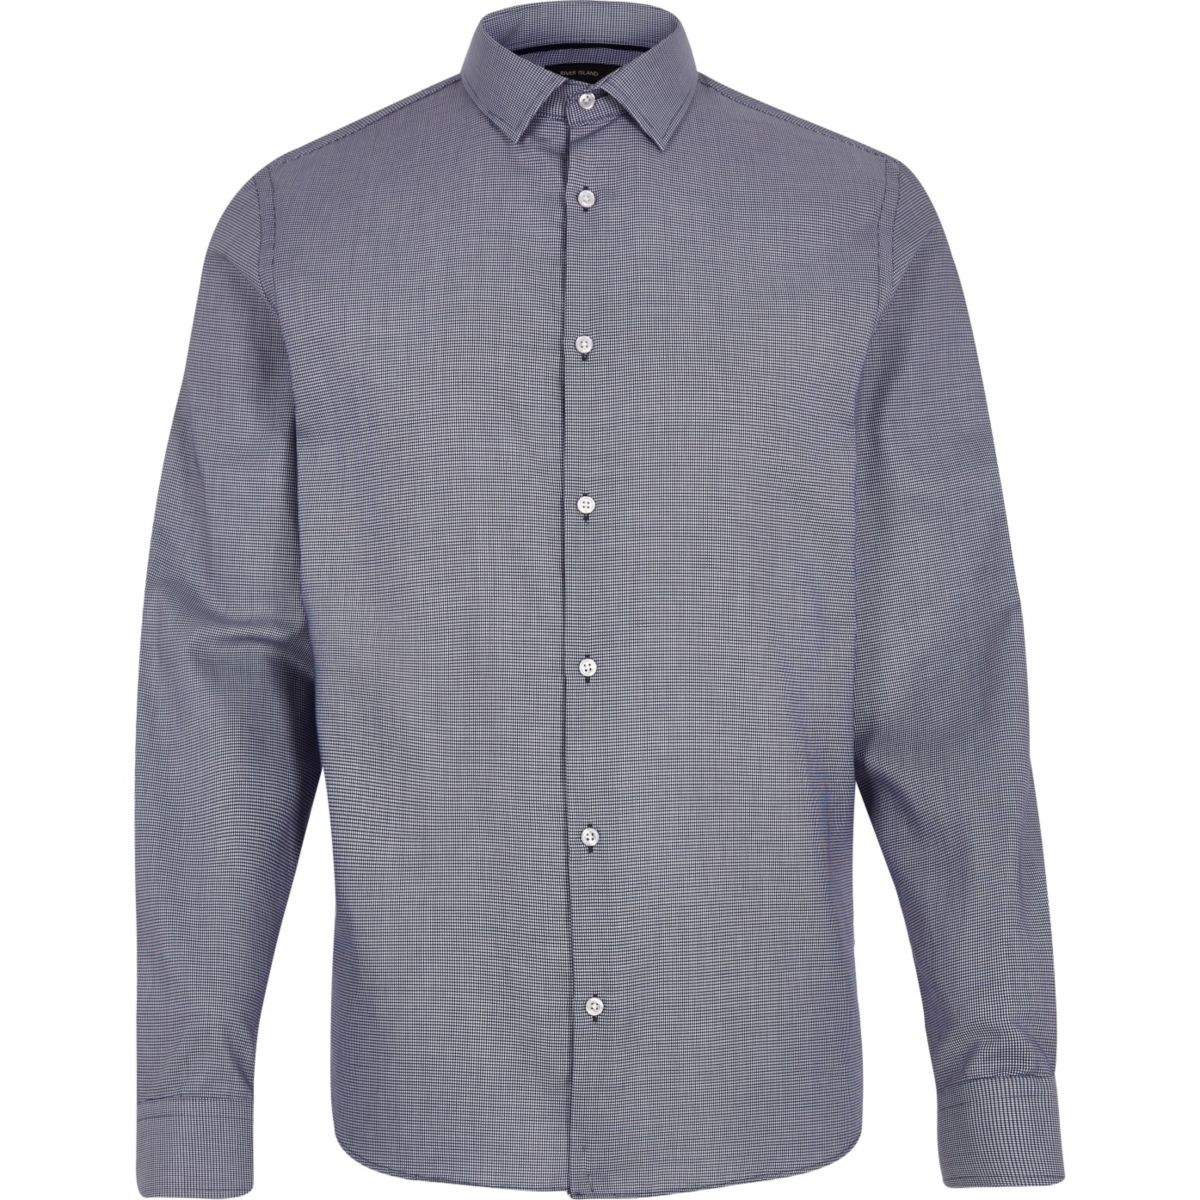 Navy  jacquard slim fit shirt